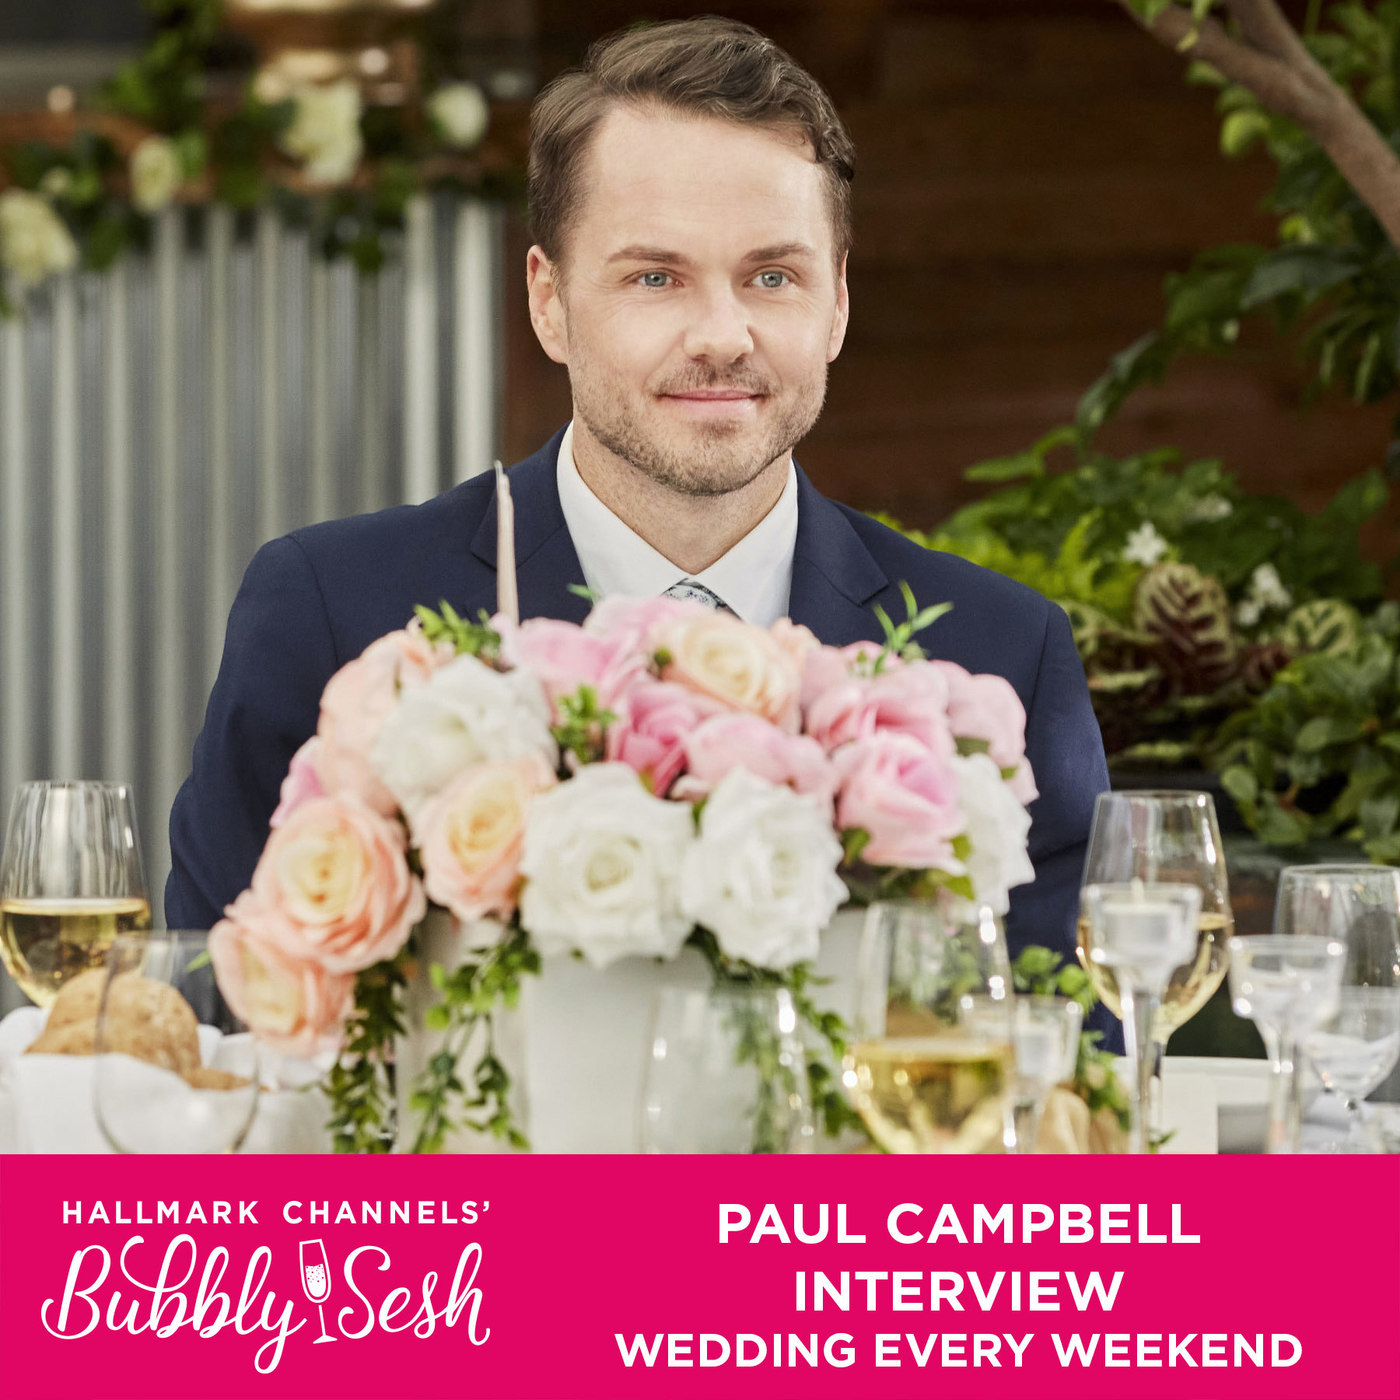 Paul Campbell Interview, Wedding Every Weekend